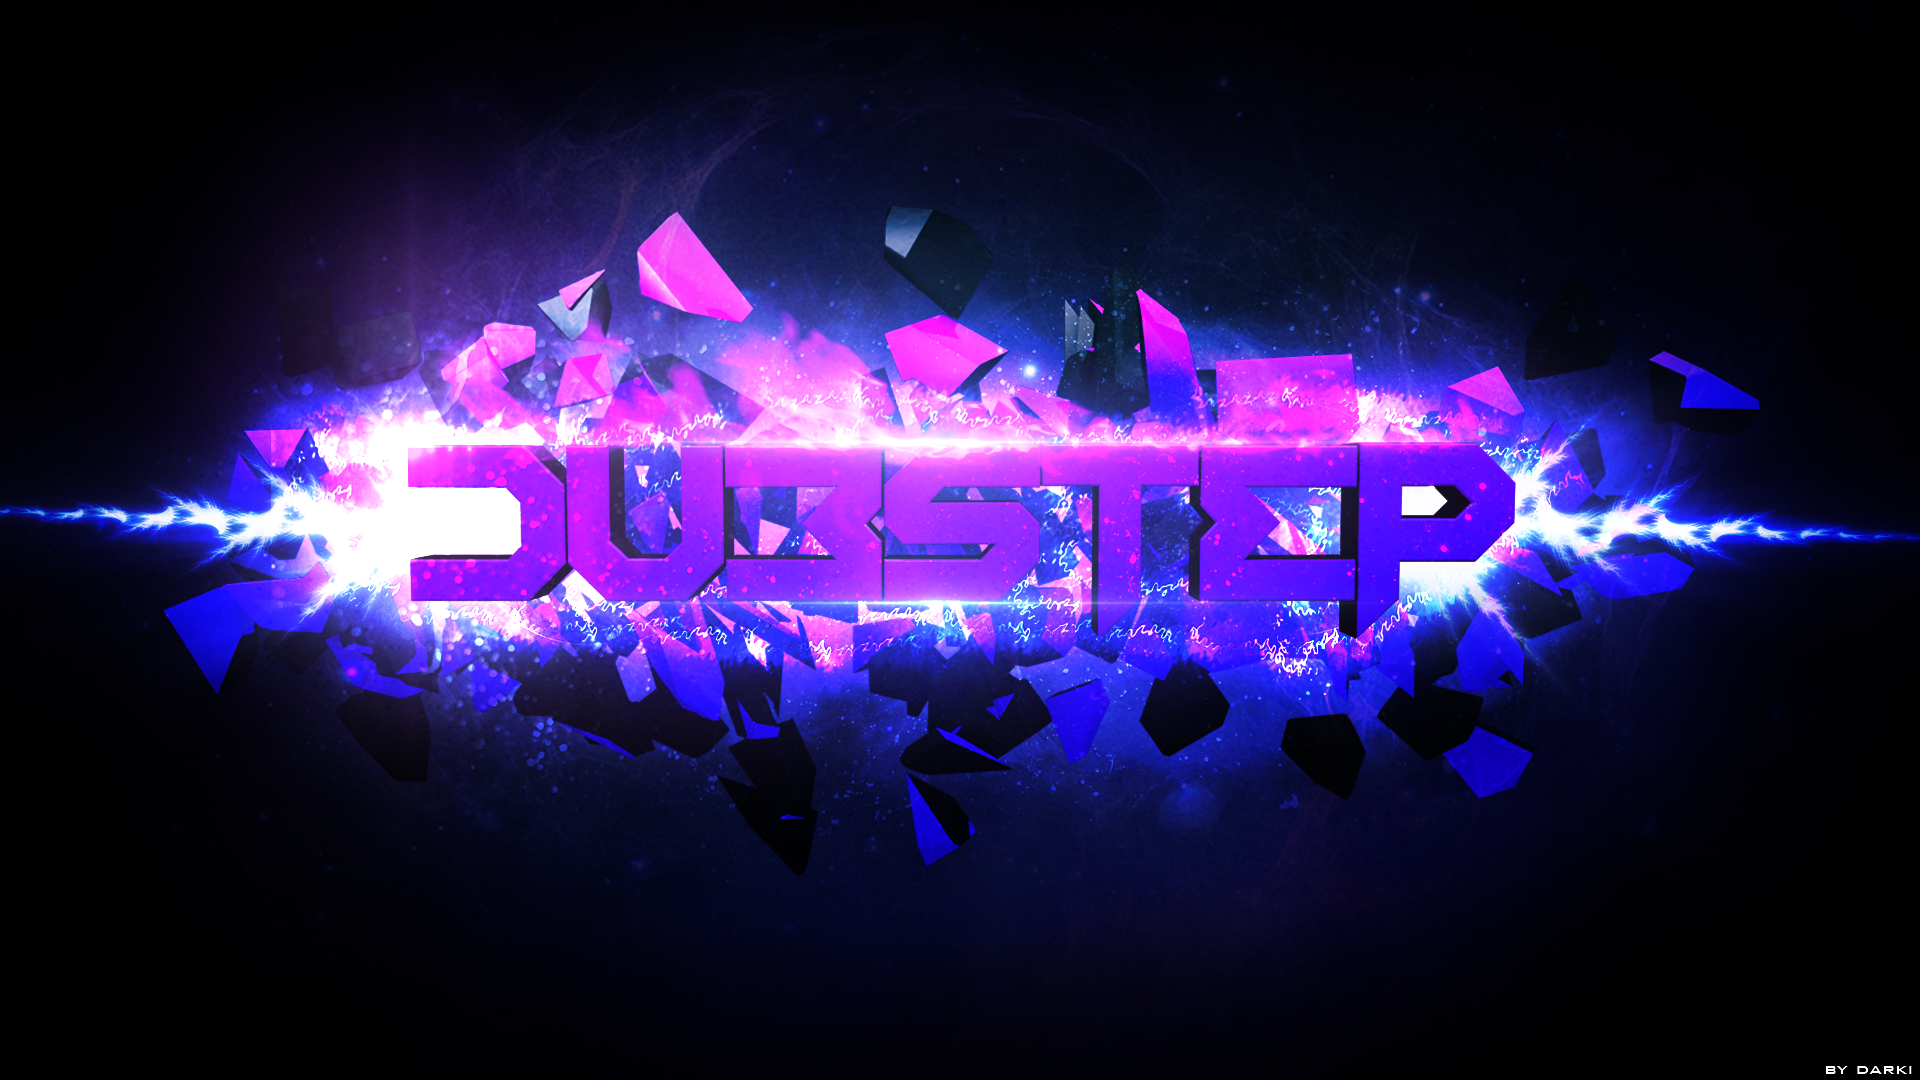 abstract dubstep wallpaper 1080p - photo #35